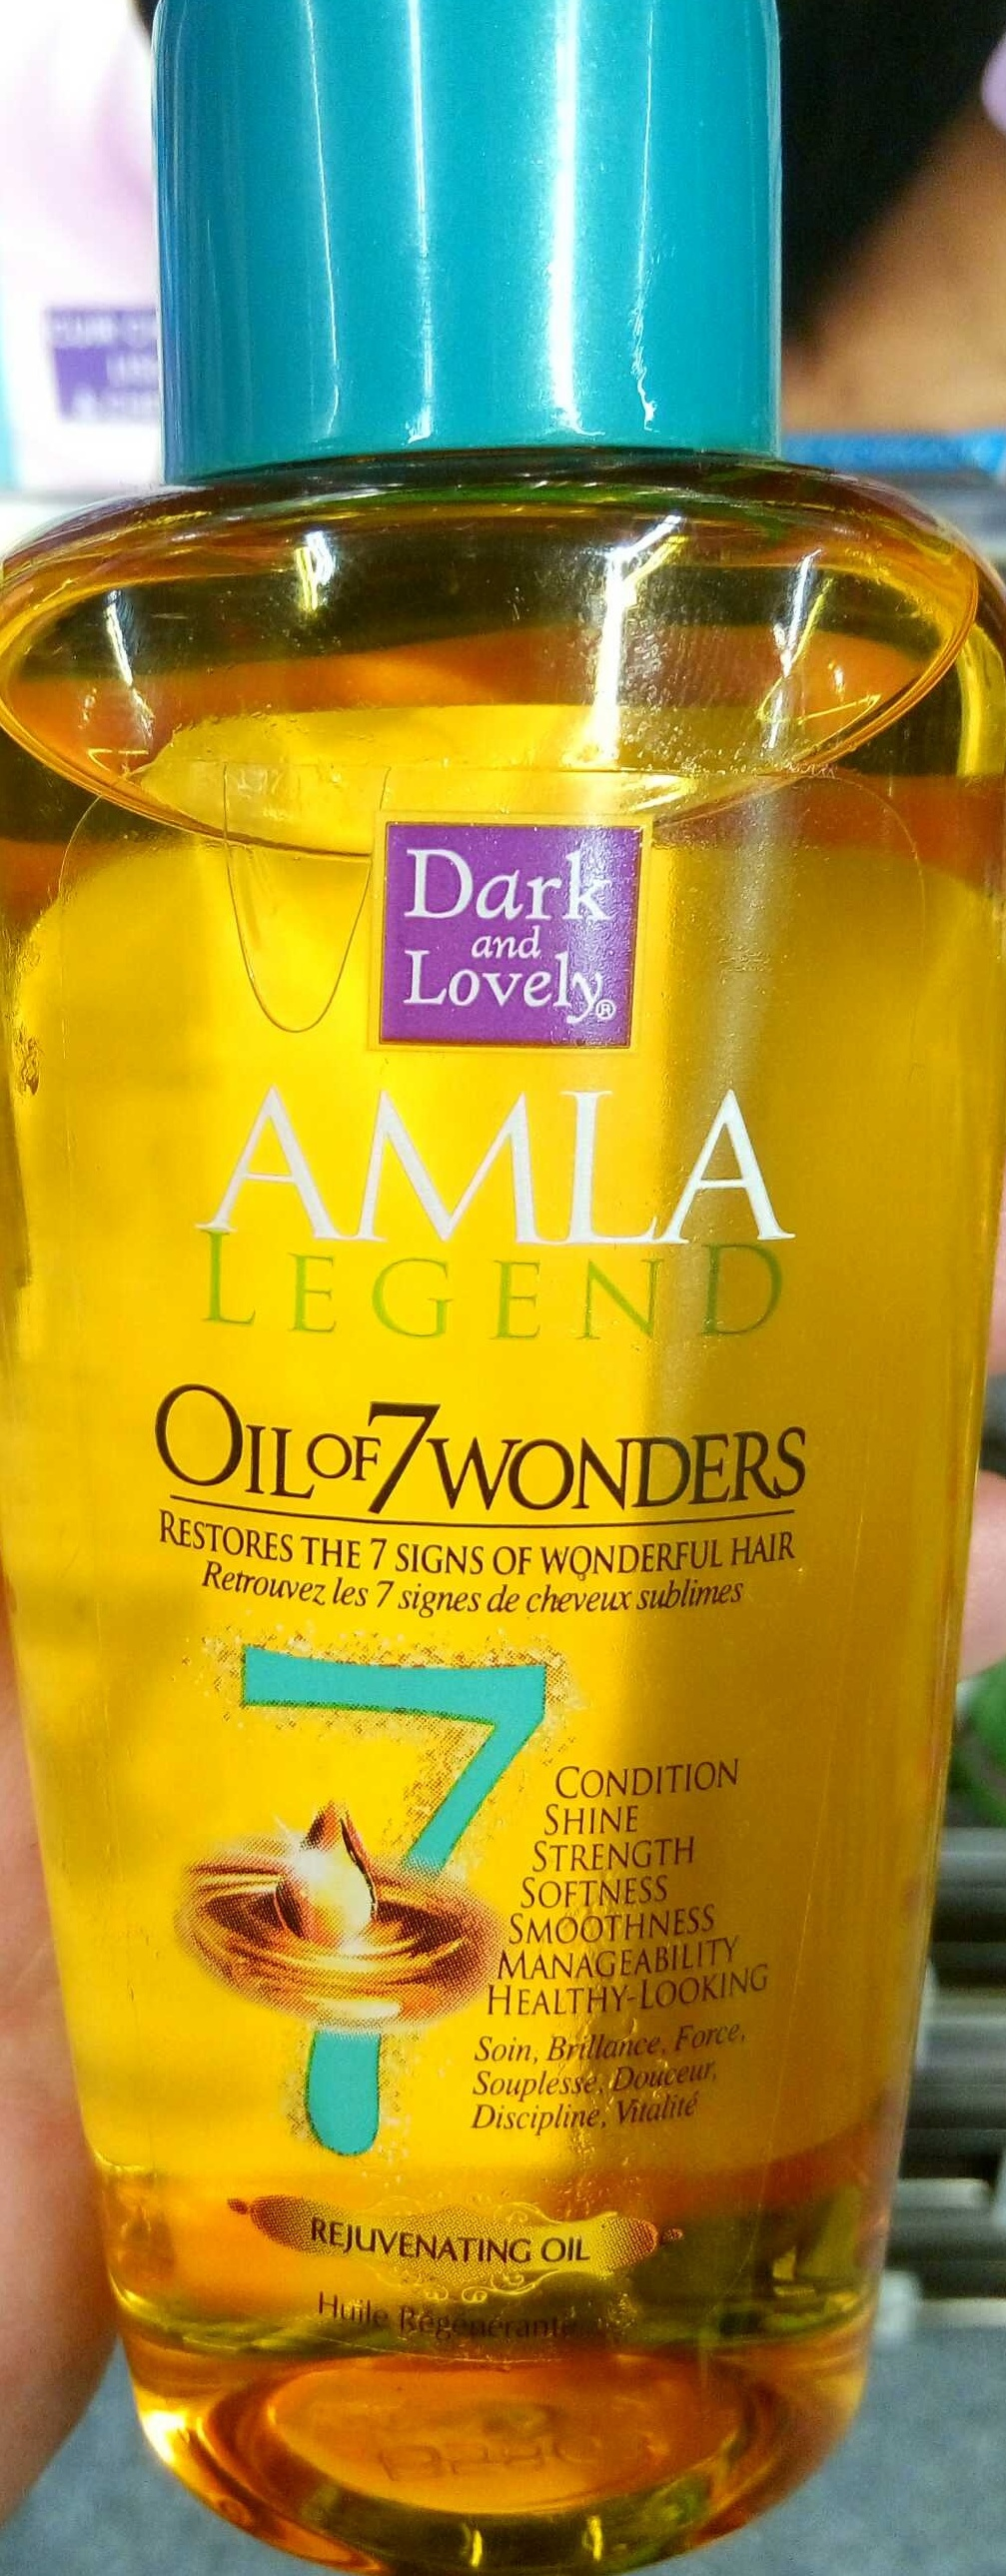 AMLA Legend Oil of 7 Wonders Rejuvenating Oil - Produit - fr